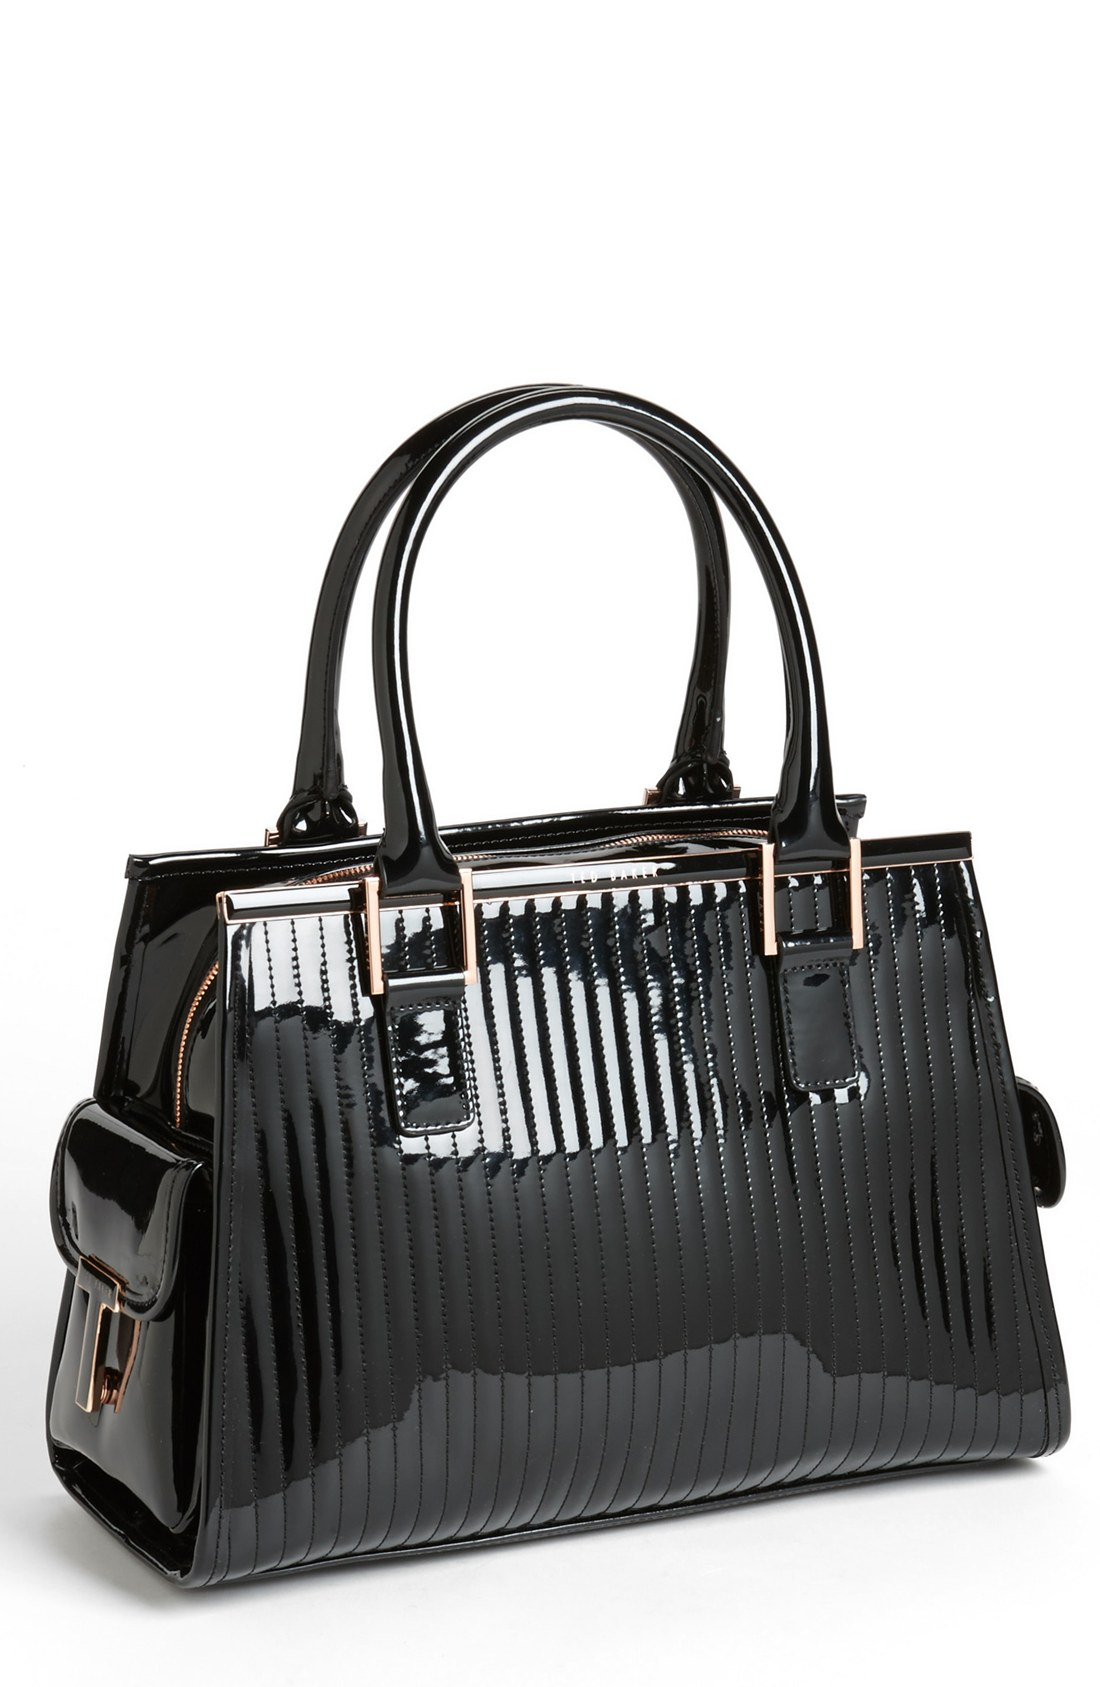 Lyst - Ted baker Jaide Quilted Tote in Black : ted baker quilted tote bag - Adamdwight.com